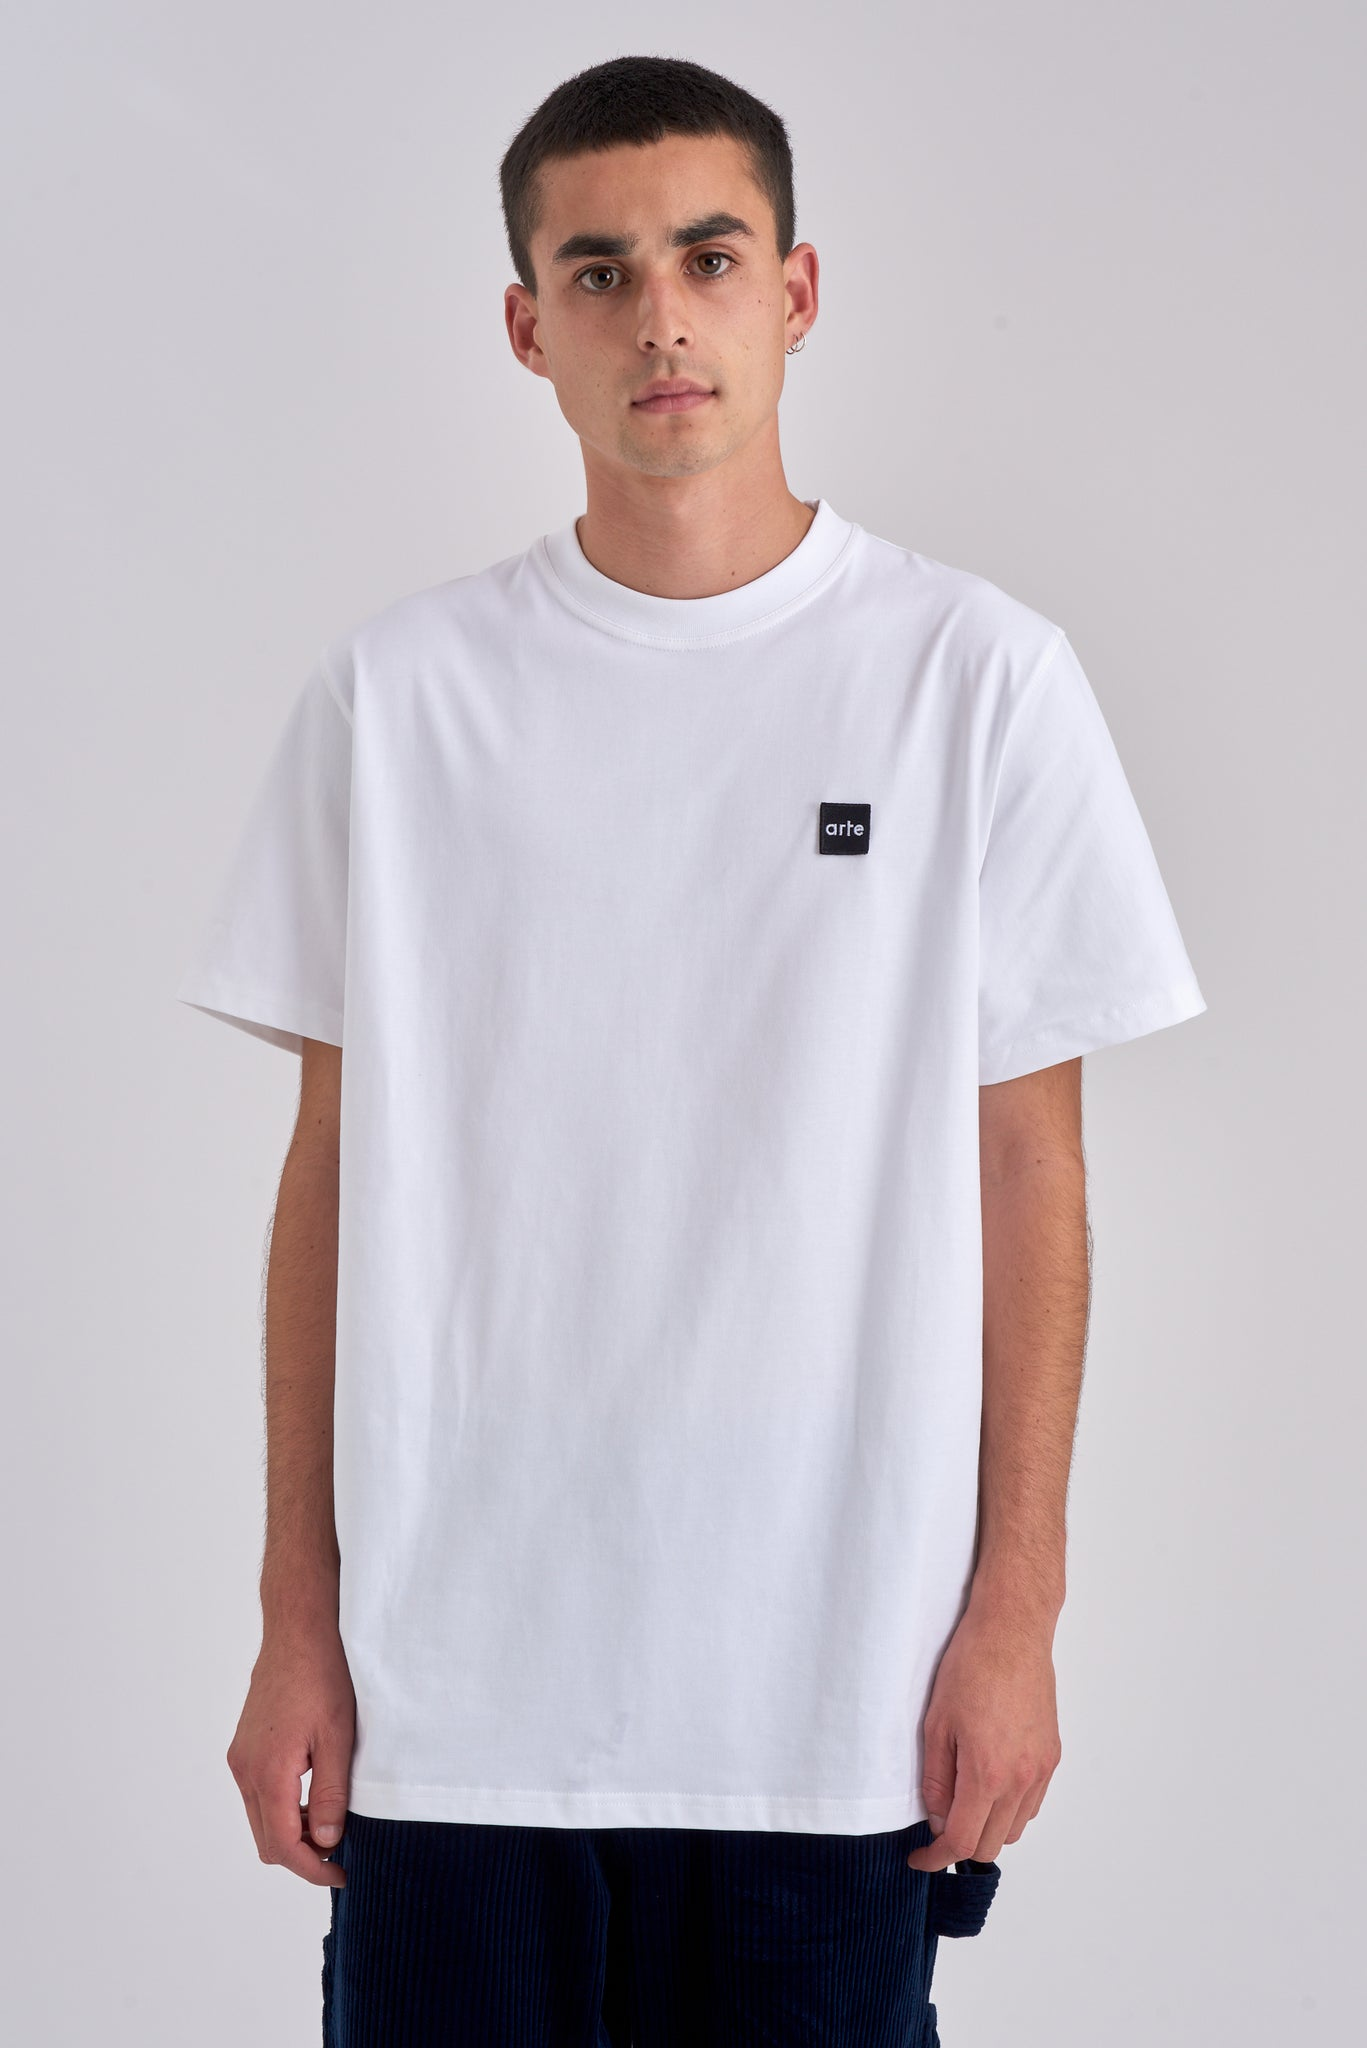 Tyler Patch White T-shirt - Arte Antwerp